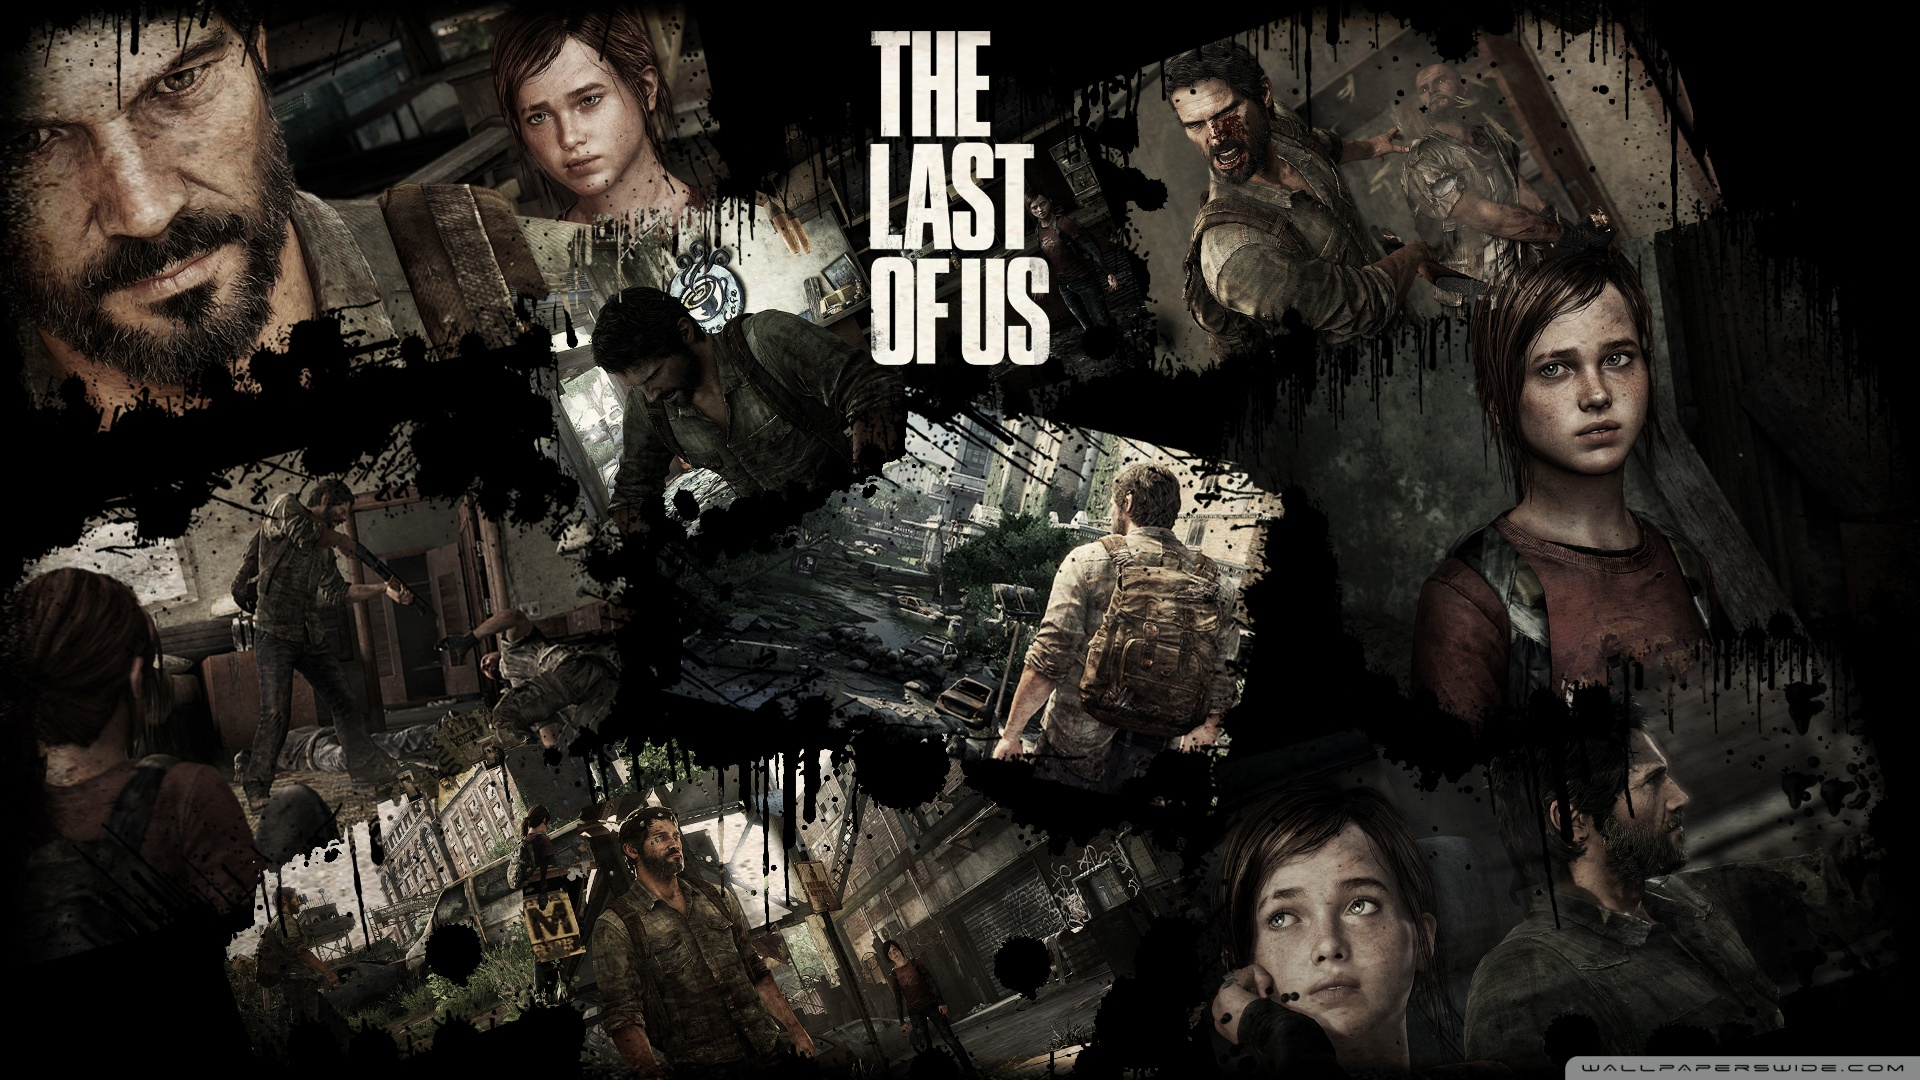 the-last-of-us-hd-wallpapers-games-images-the-last-of-us-wallpaper.jpg